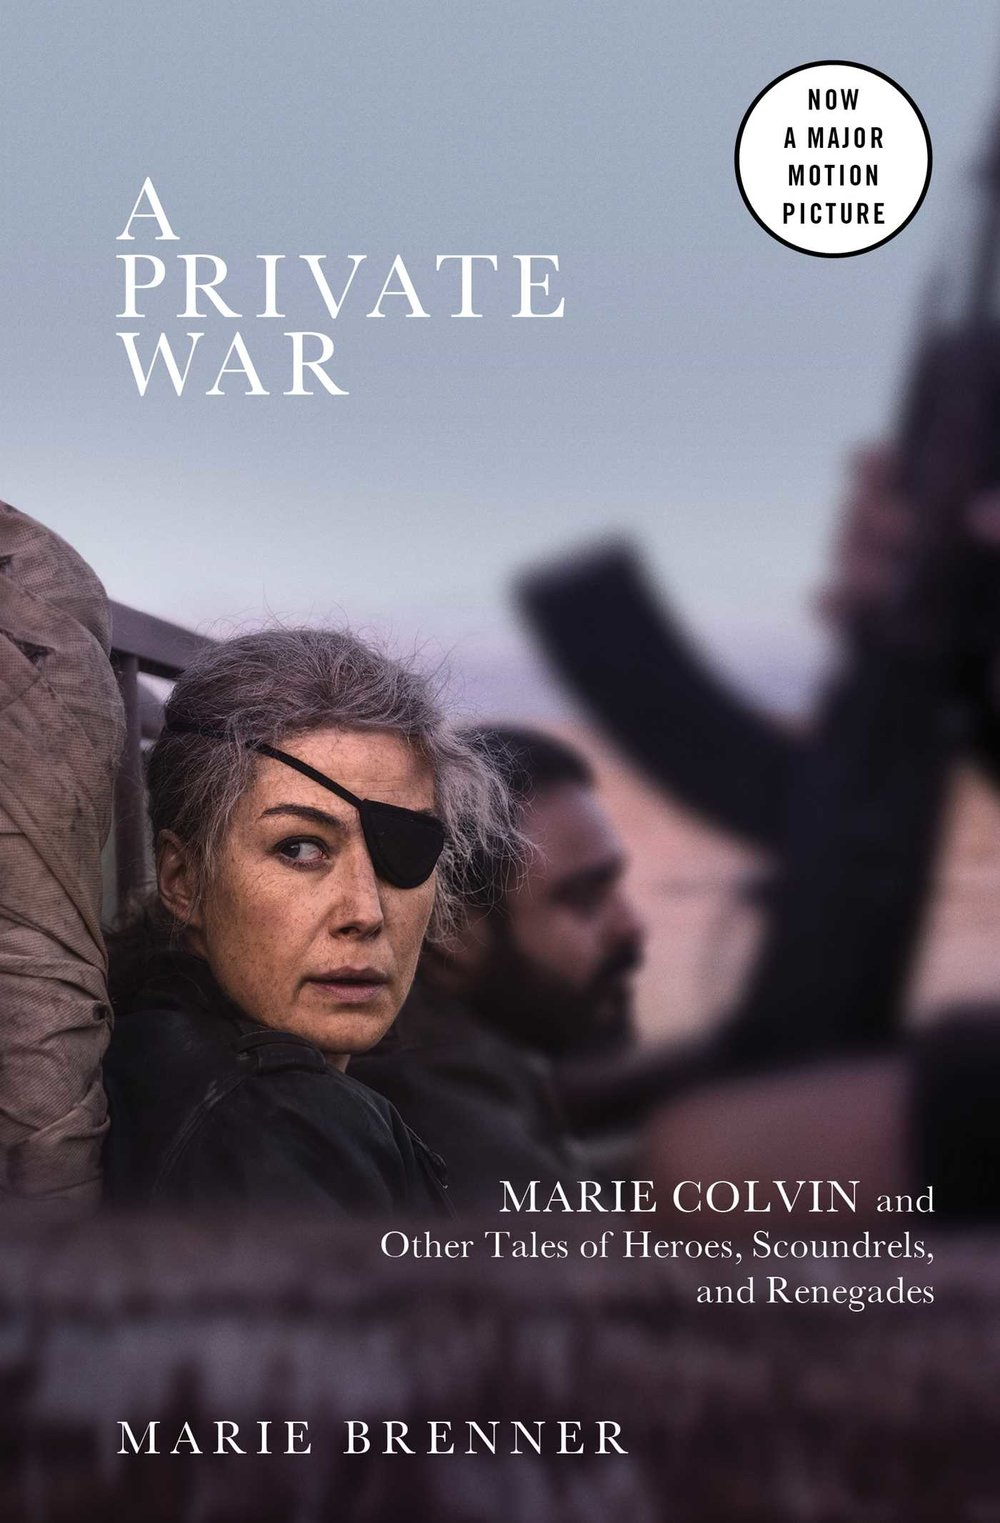 marie-brenner-a-private-war.jpg